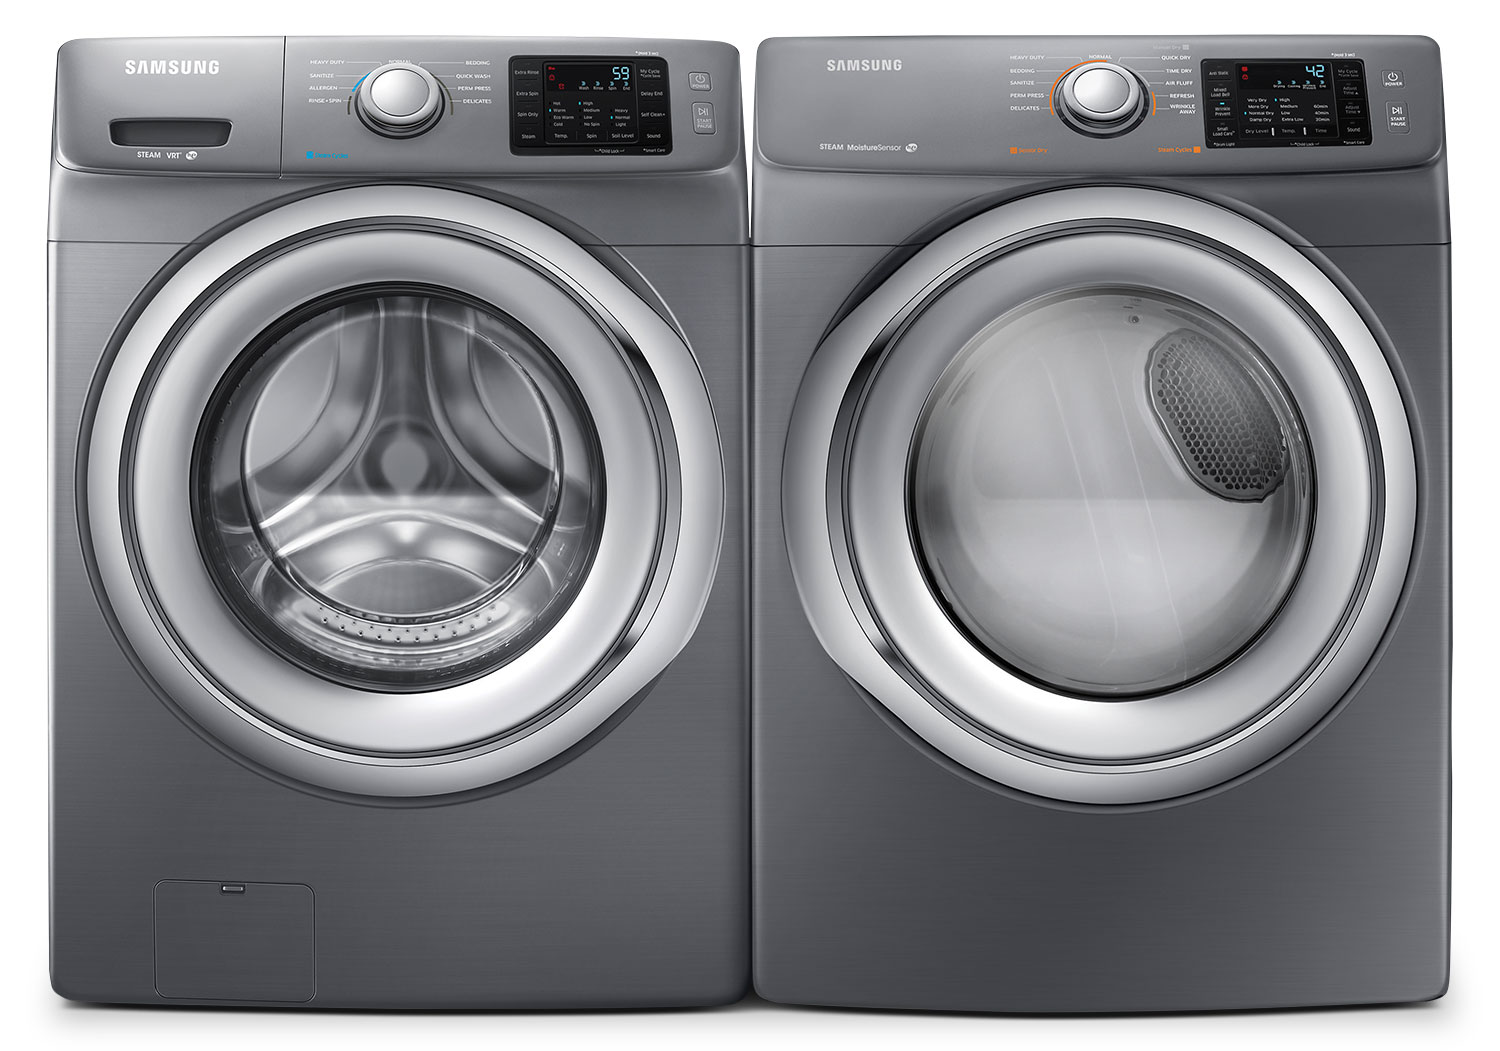 Samsung 4.8 Cu. Ft. Front-Load Washer and 7.5 Cu. Ft. Gas Dryer - Platinum